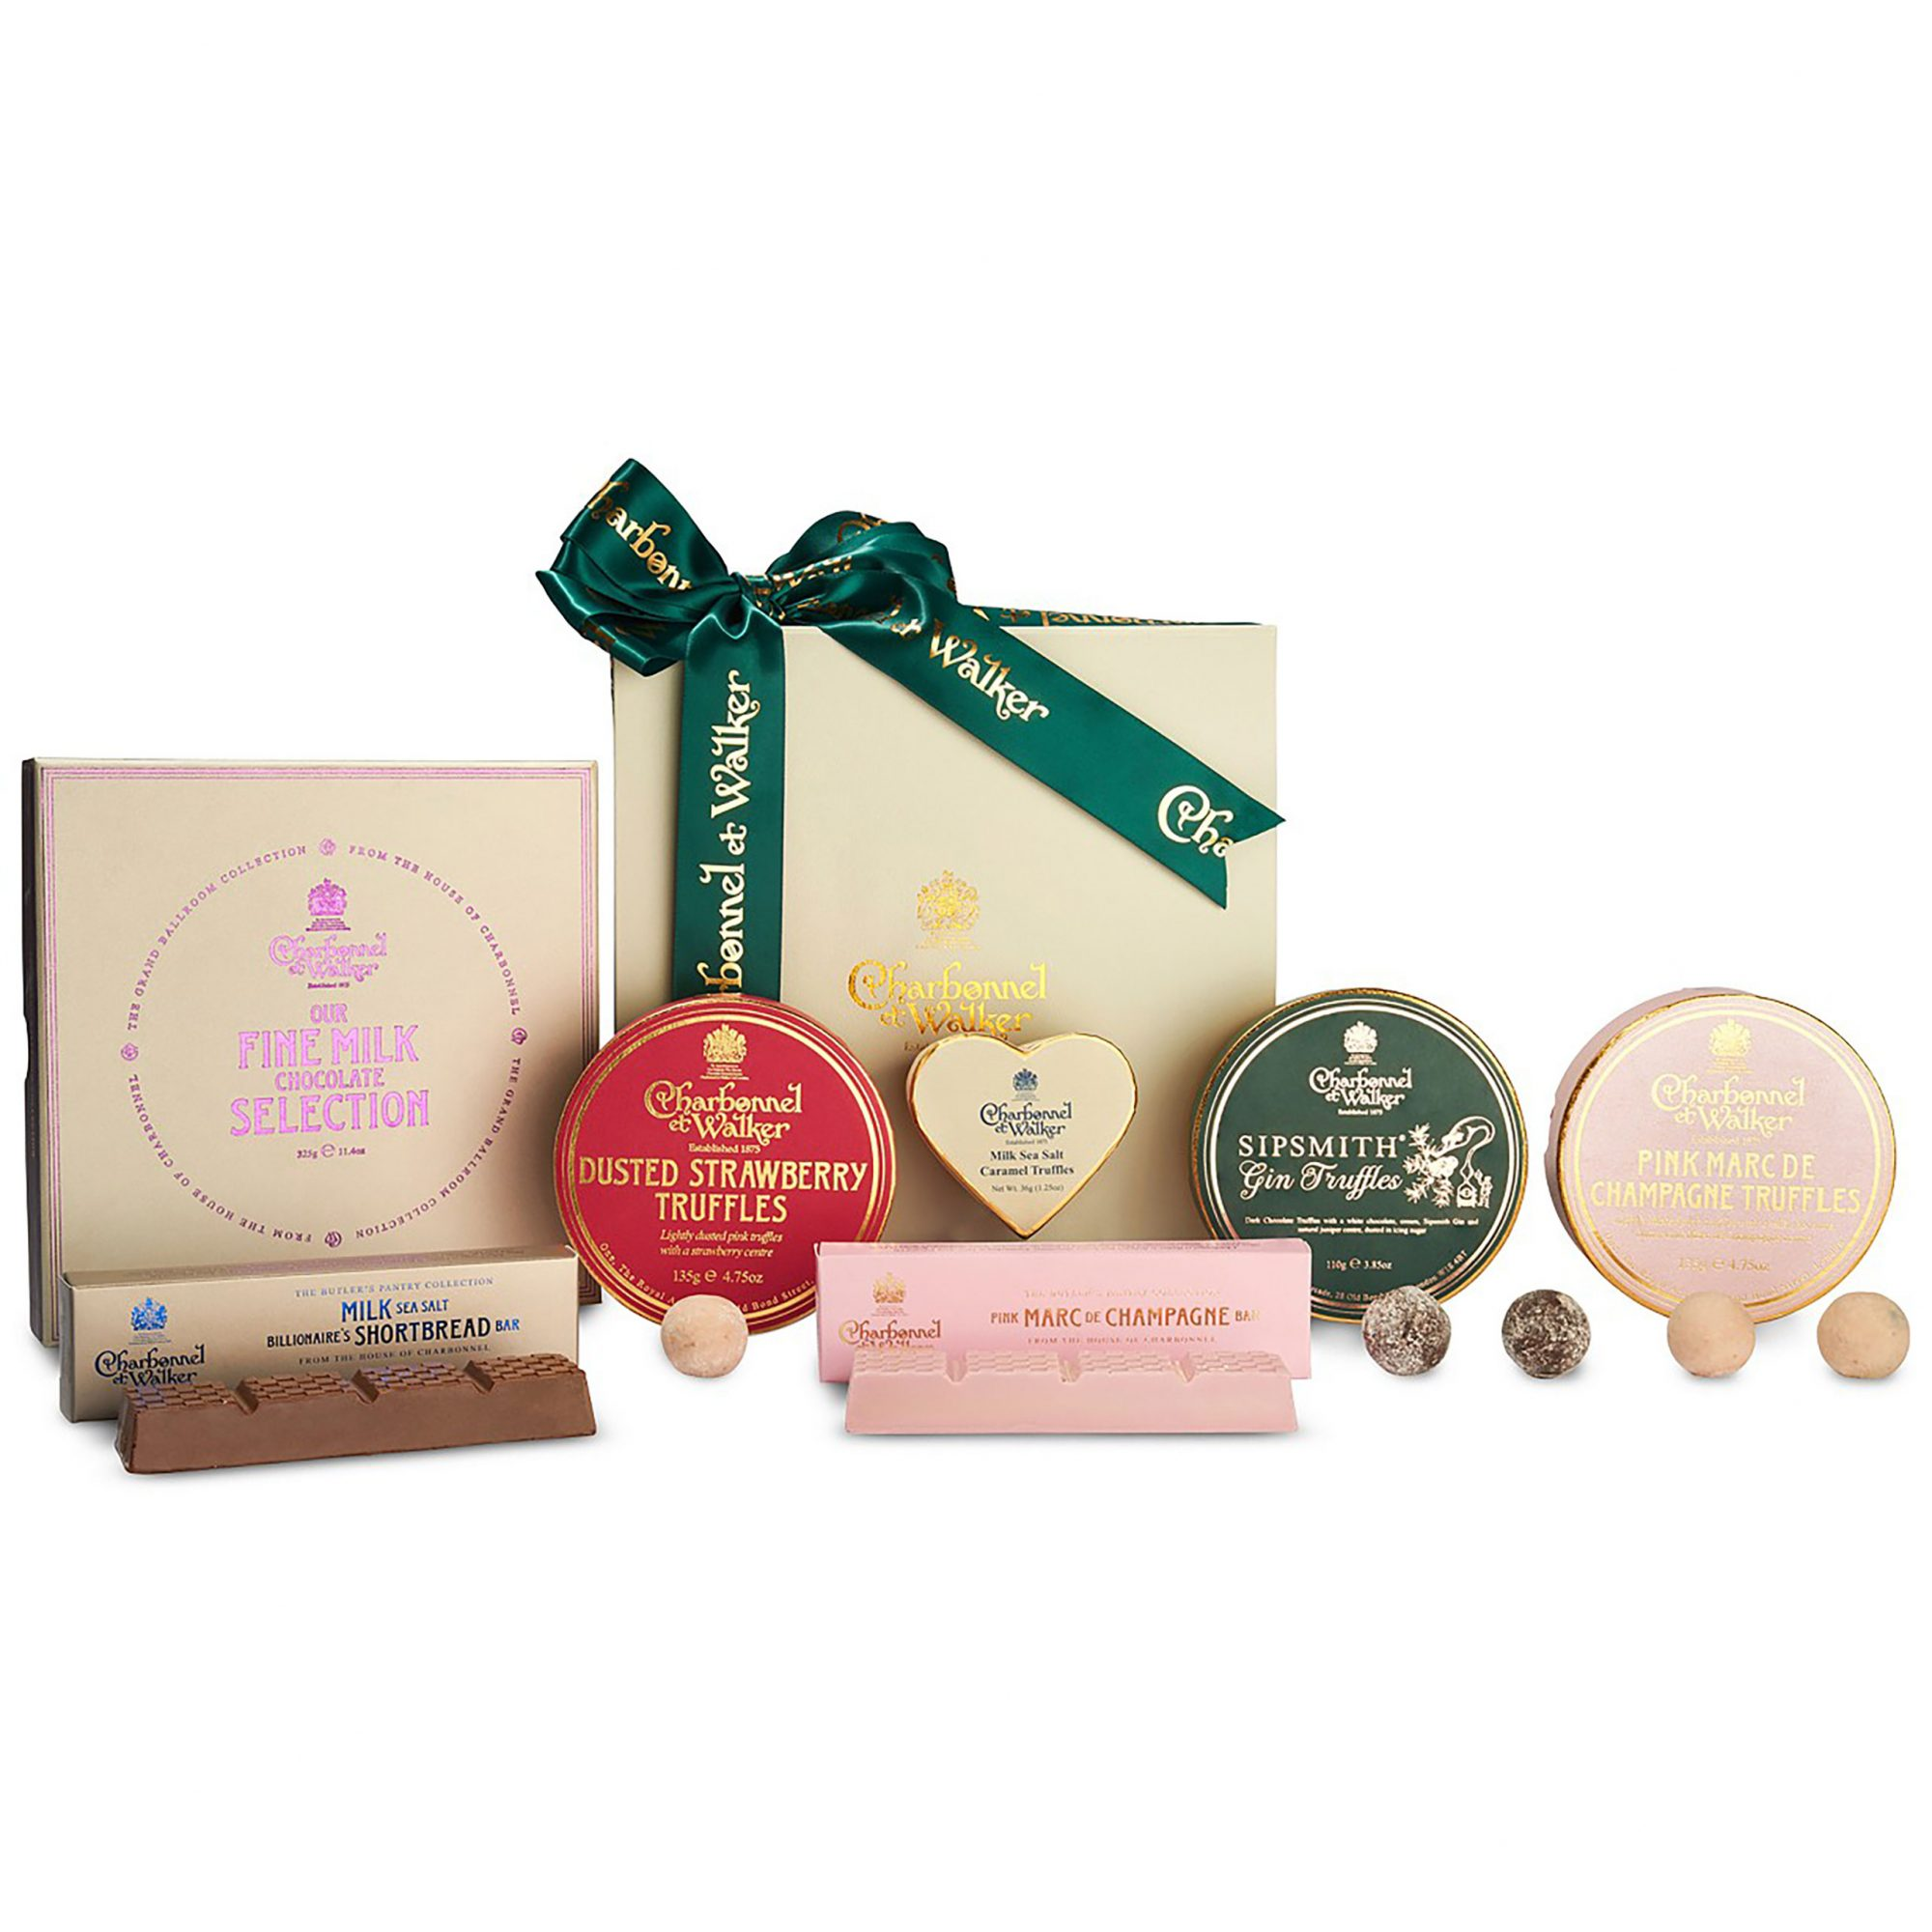 Charbonnel et Walker Truffle Gift Set